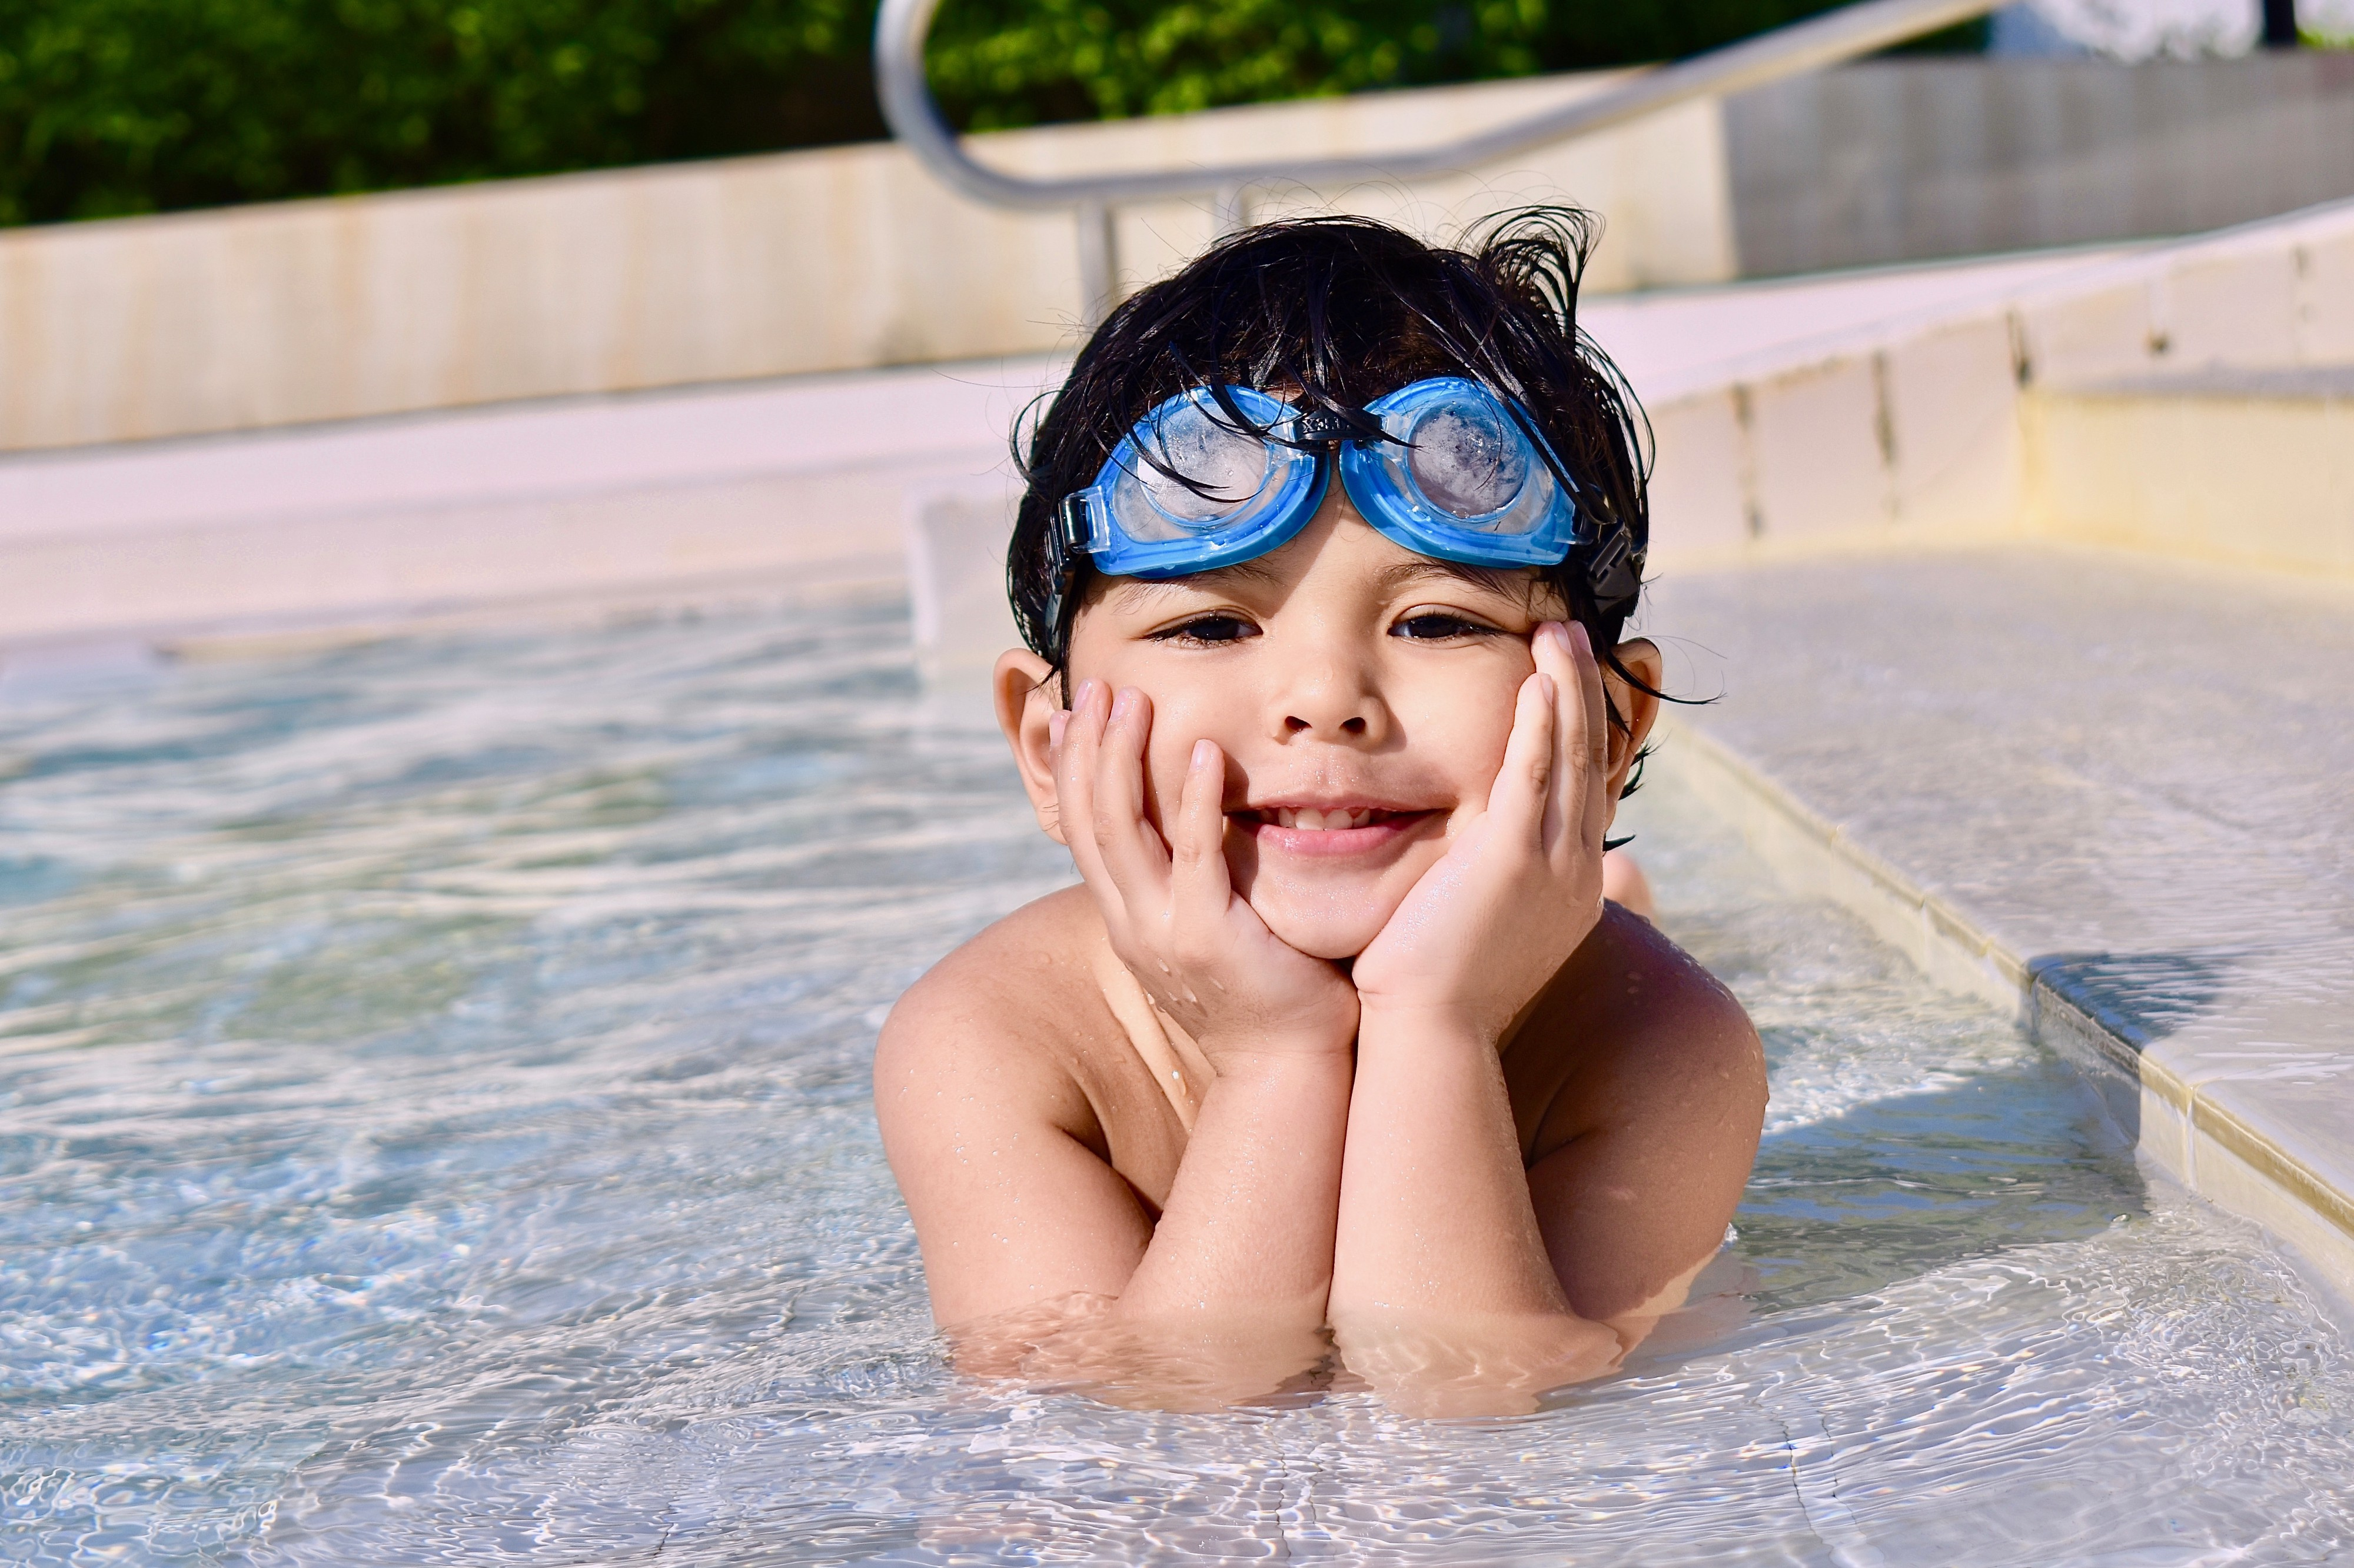 A handsome child sun bathing in the pool with his hands touching his face